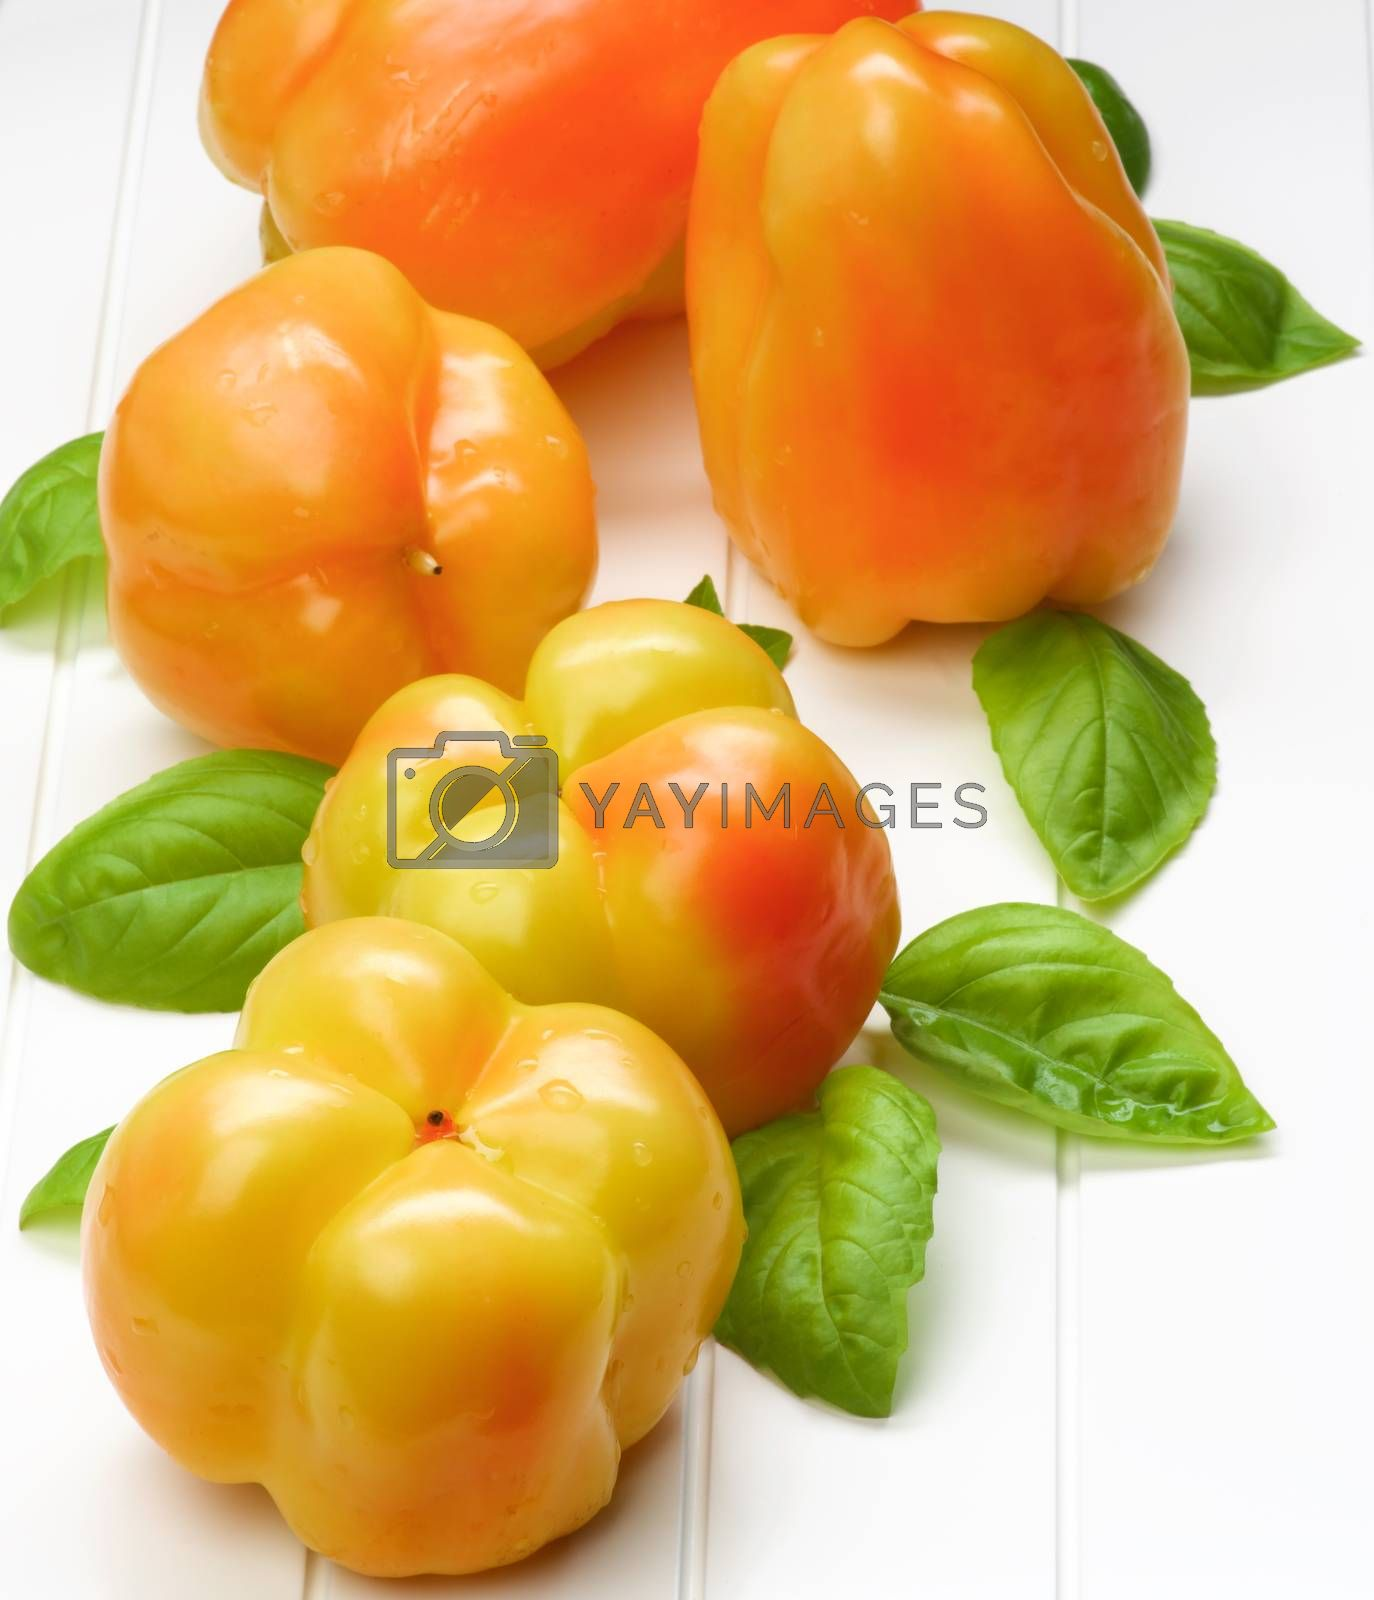 Fresh Crunchy Yellow and Orange Bell Peppers with Green Basil Leafs closeup on White Plank background